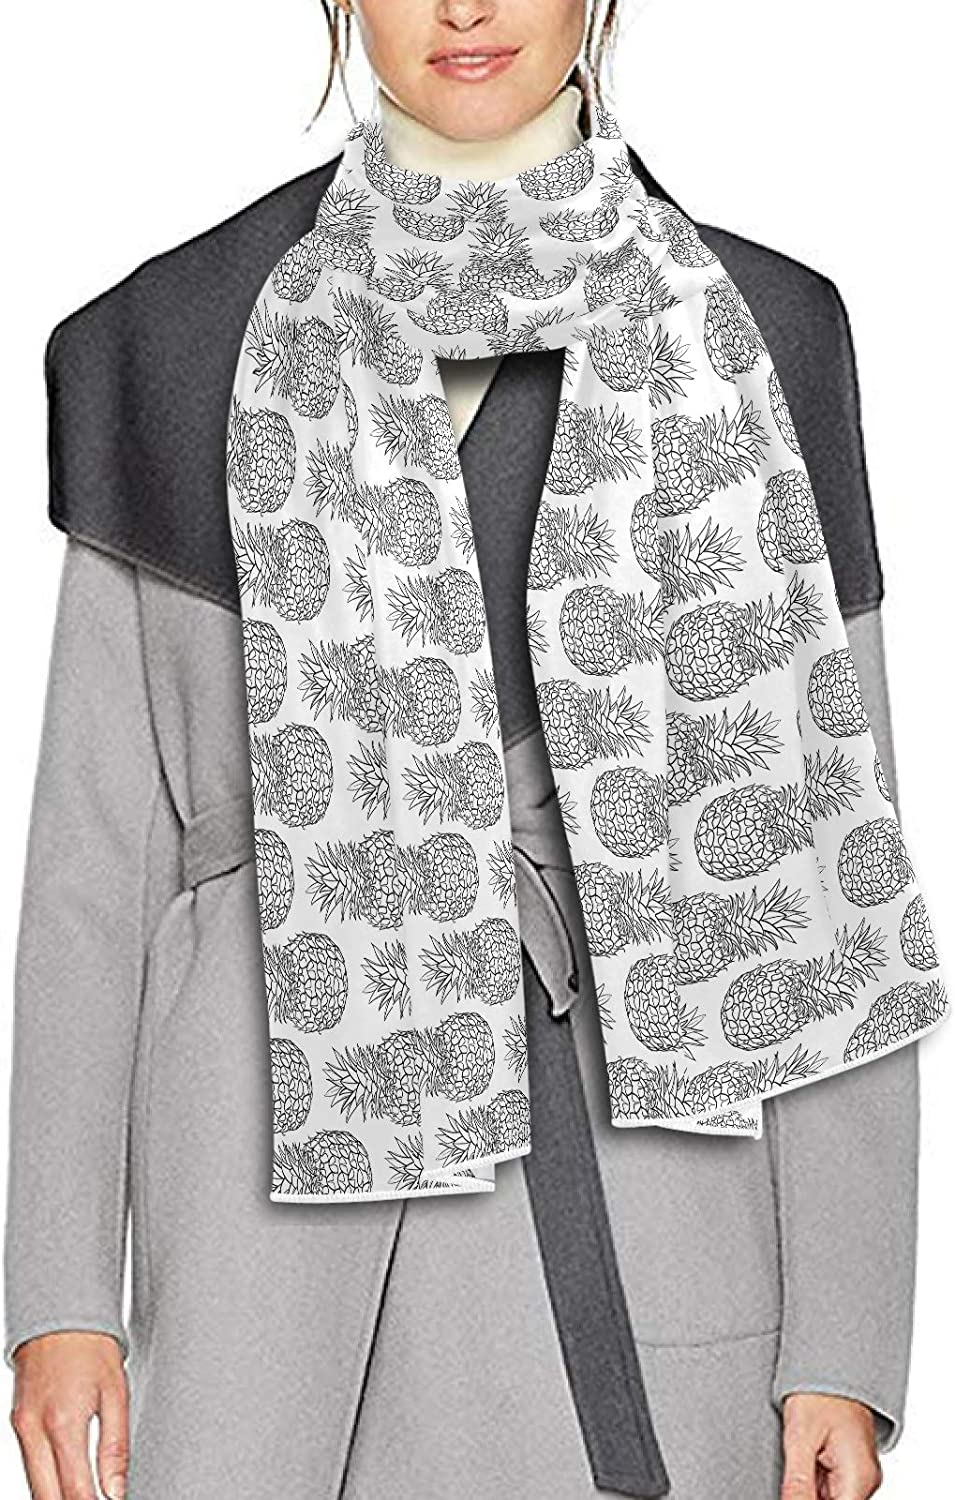 Scarf for Women and Men Pineapple Shawl Wraps Blanket Scarf Soft Thick Winter Large Scarves Lightweight